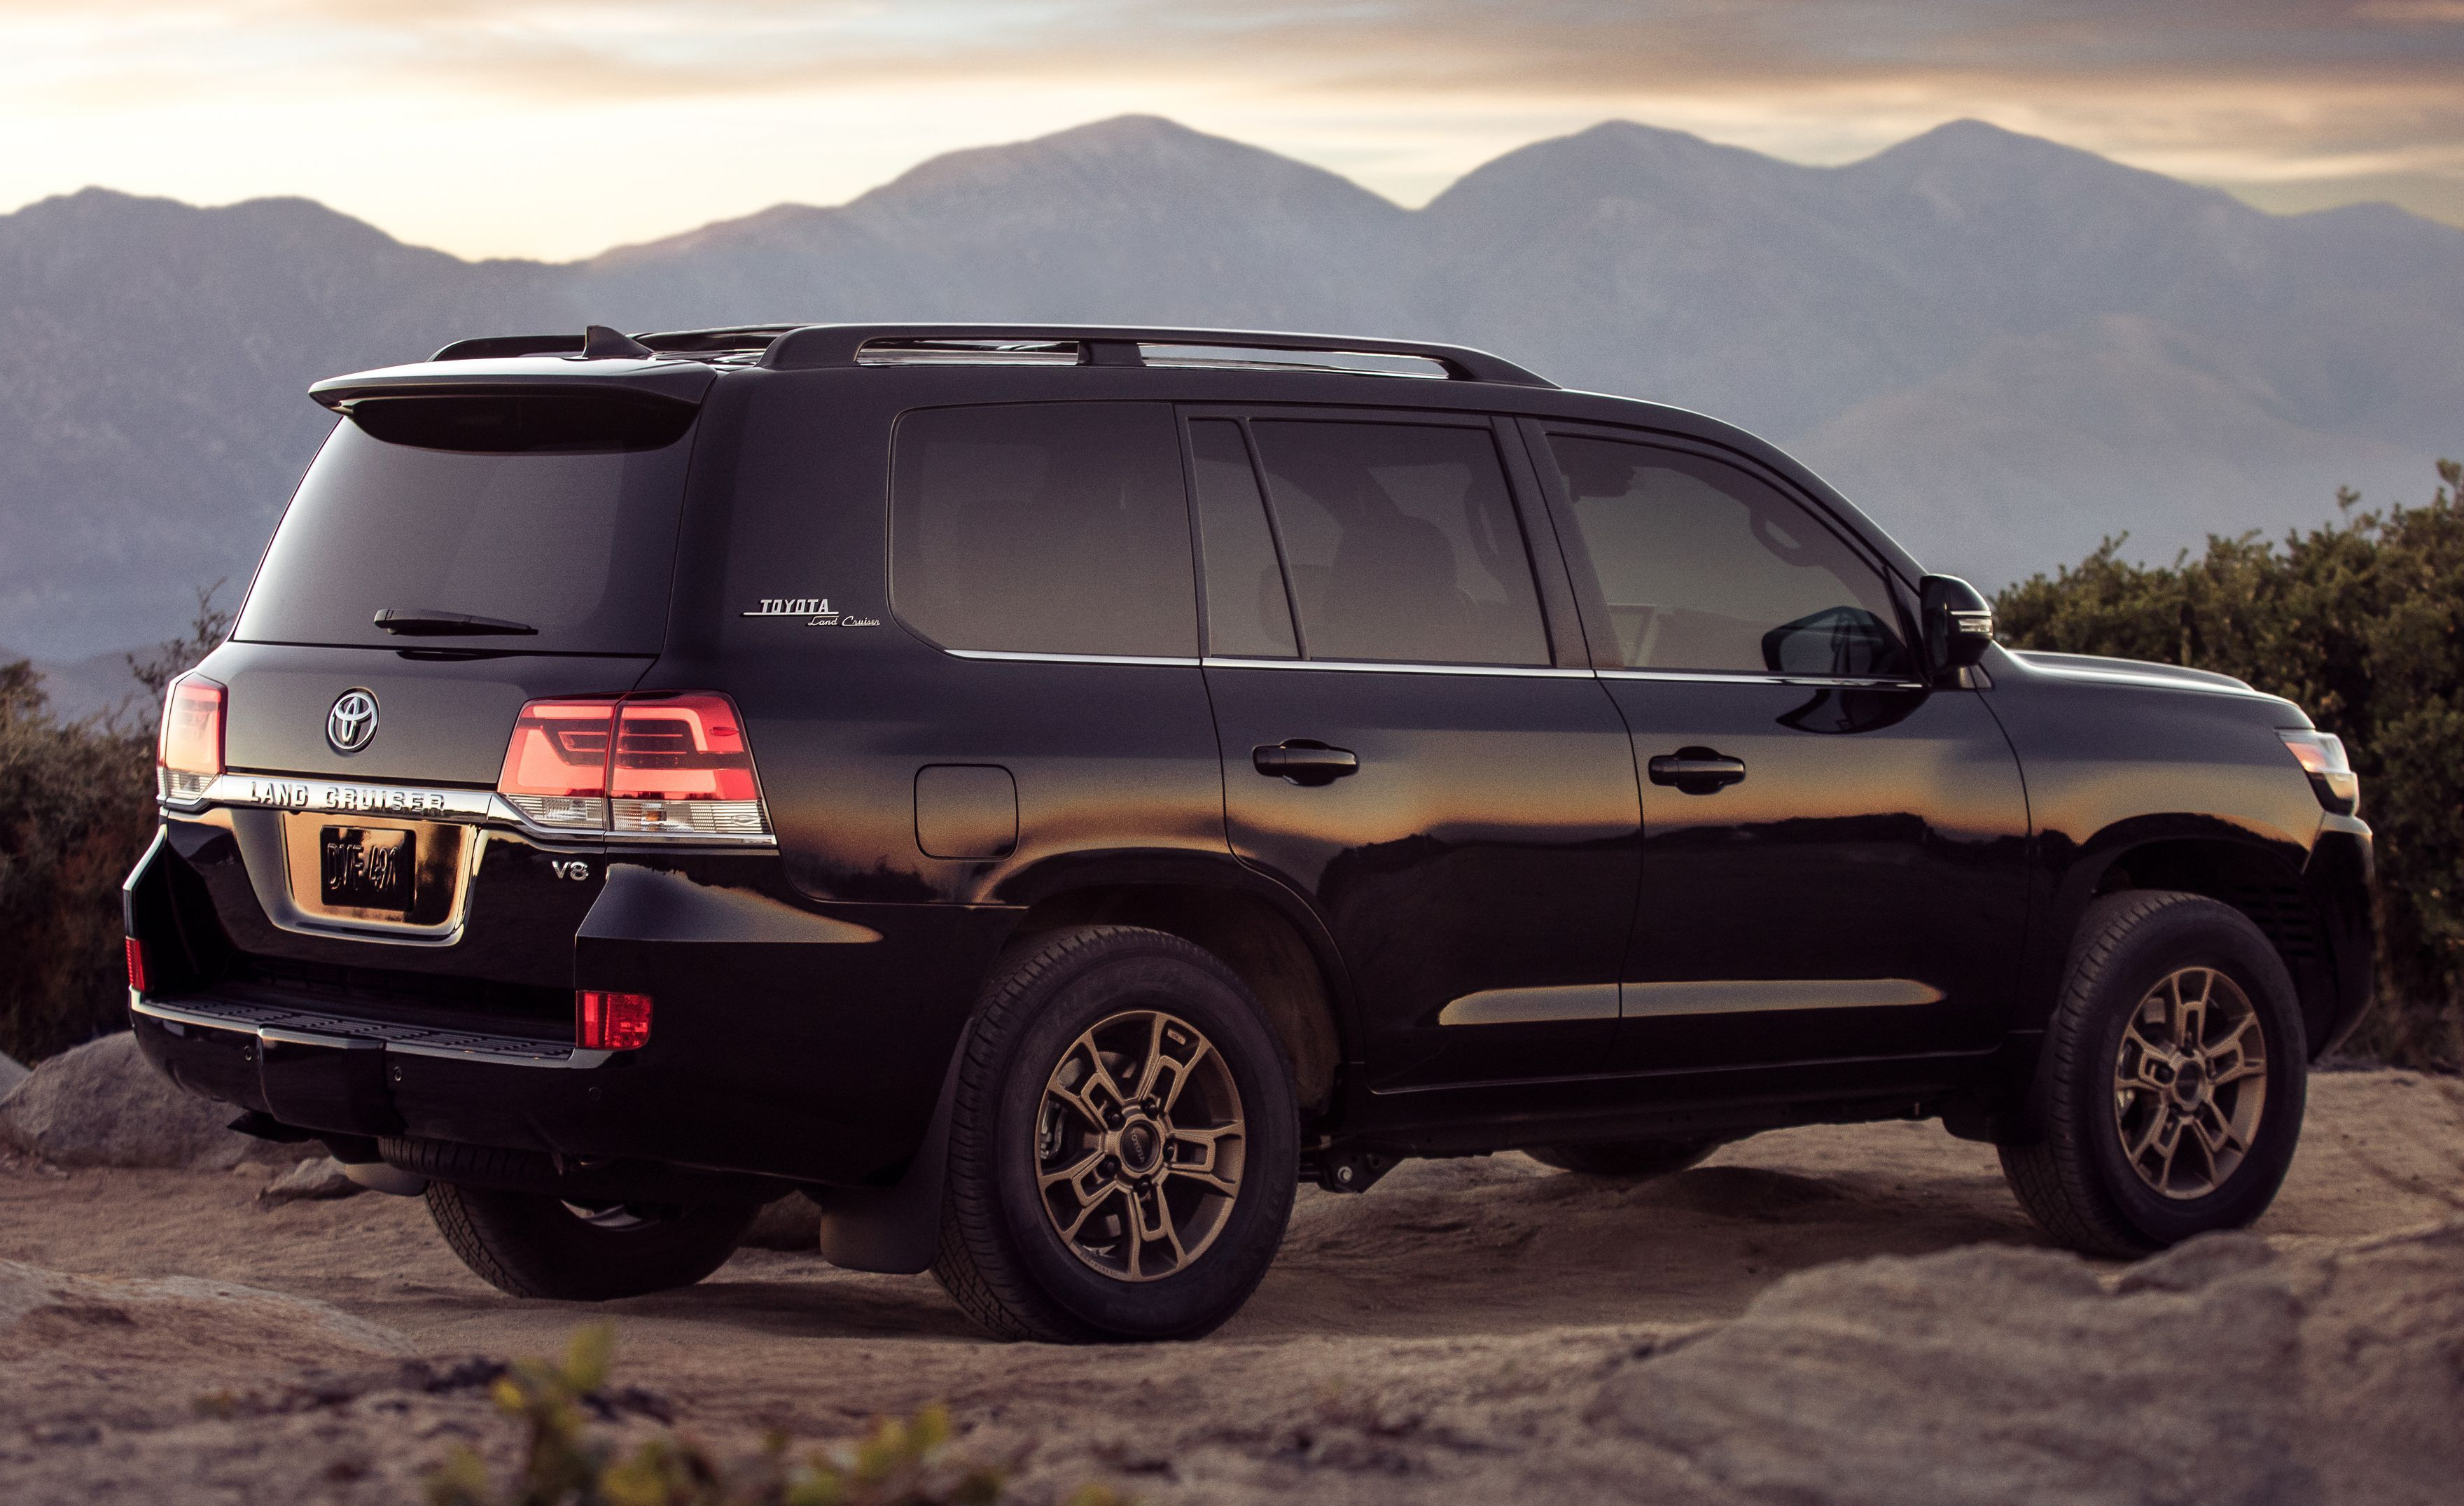 The 2020 Land Cruiser Heritage Edition In Photos Land Cruiser Toyota Land Cruiser Cruisers